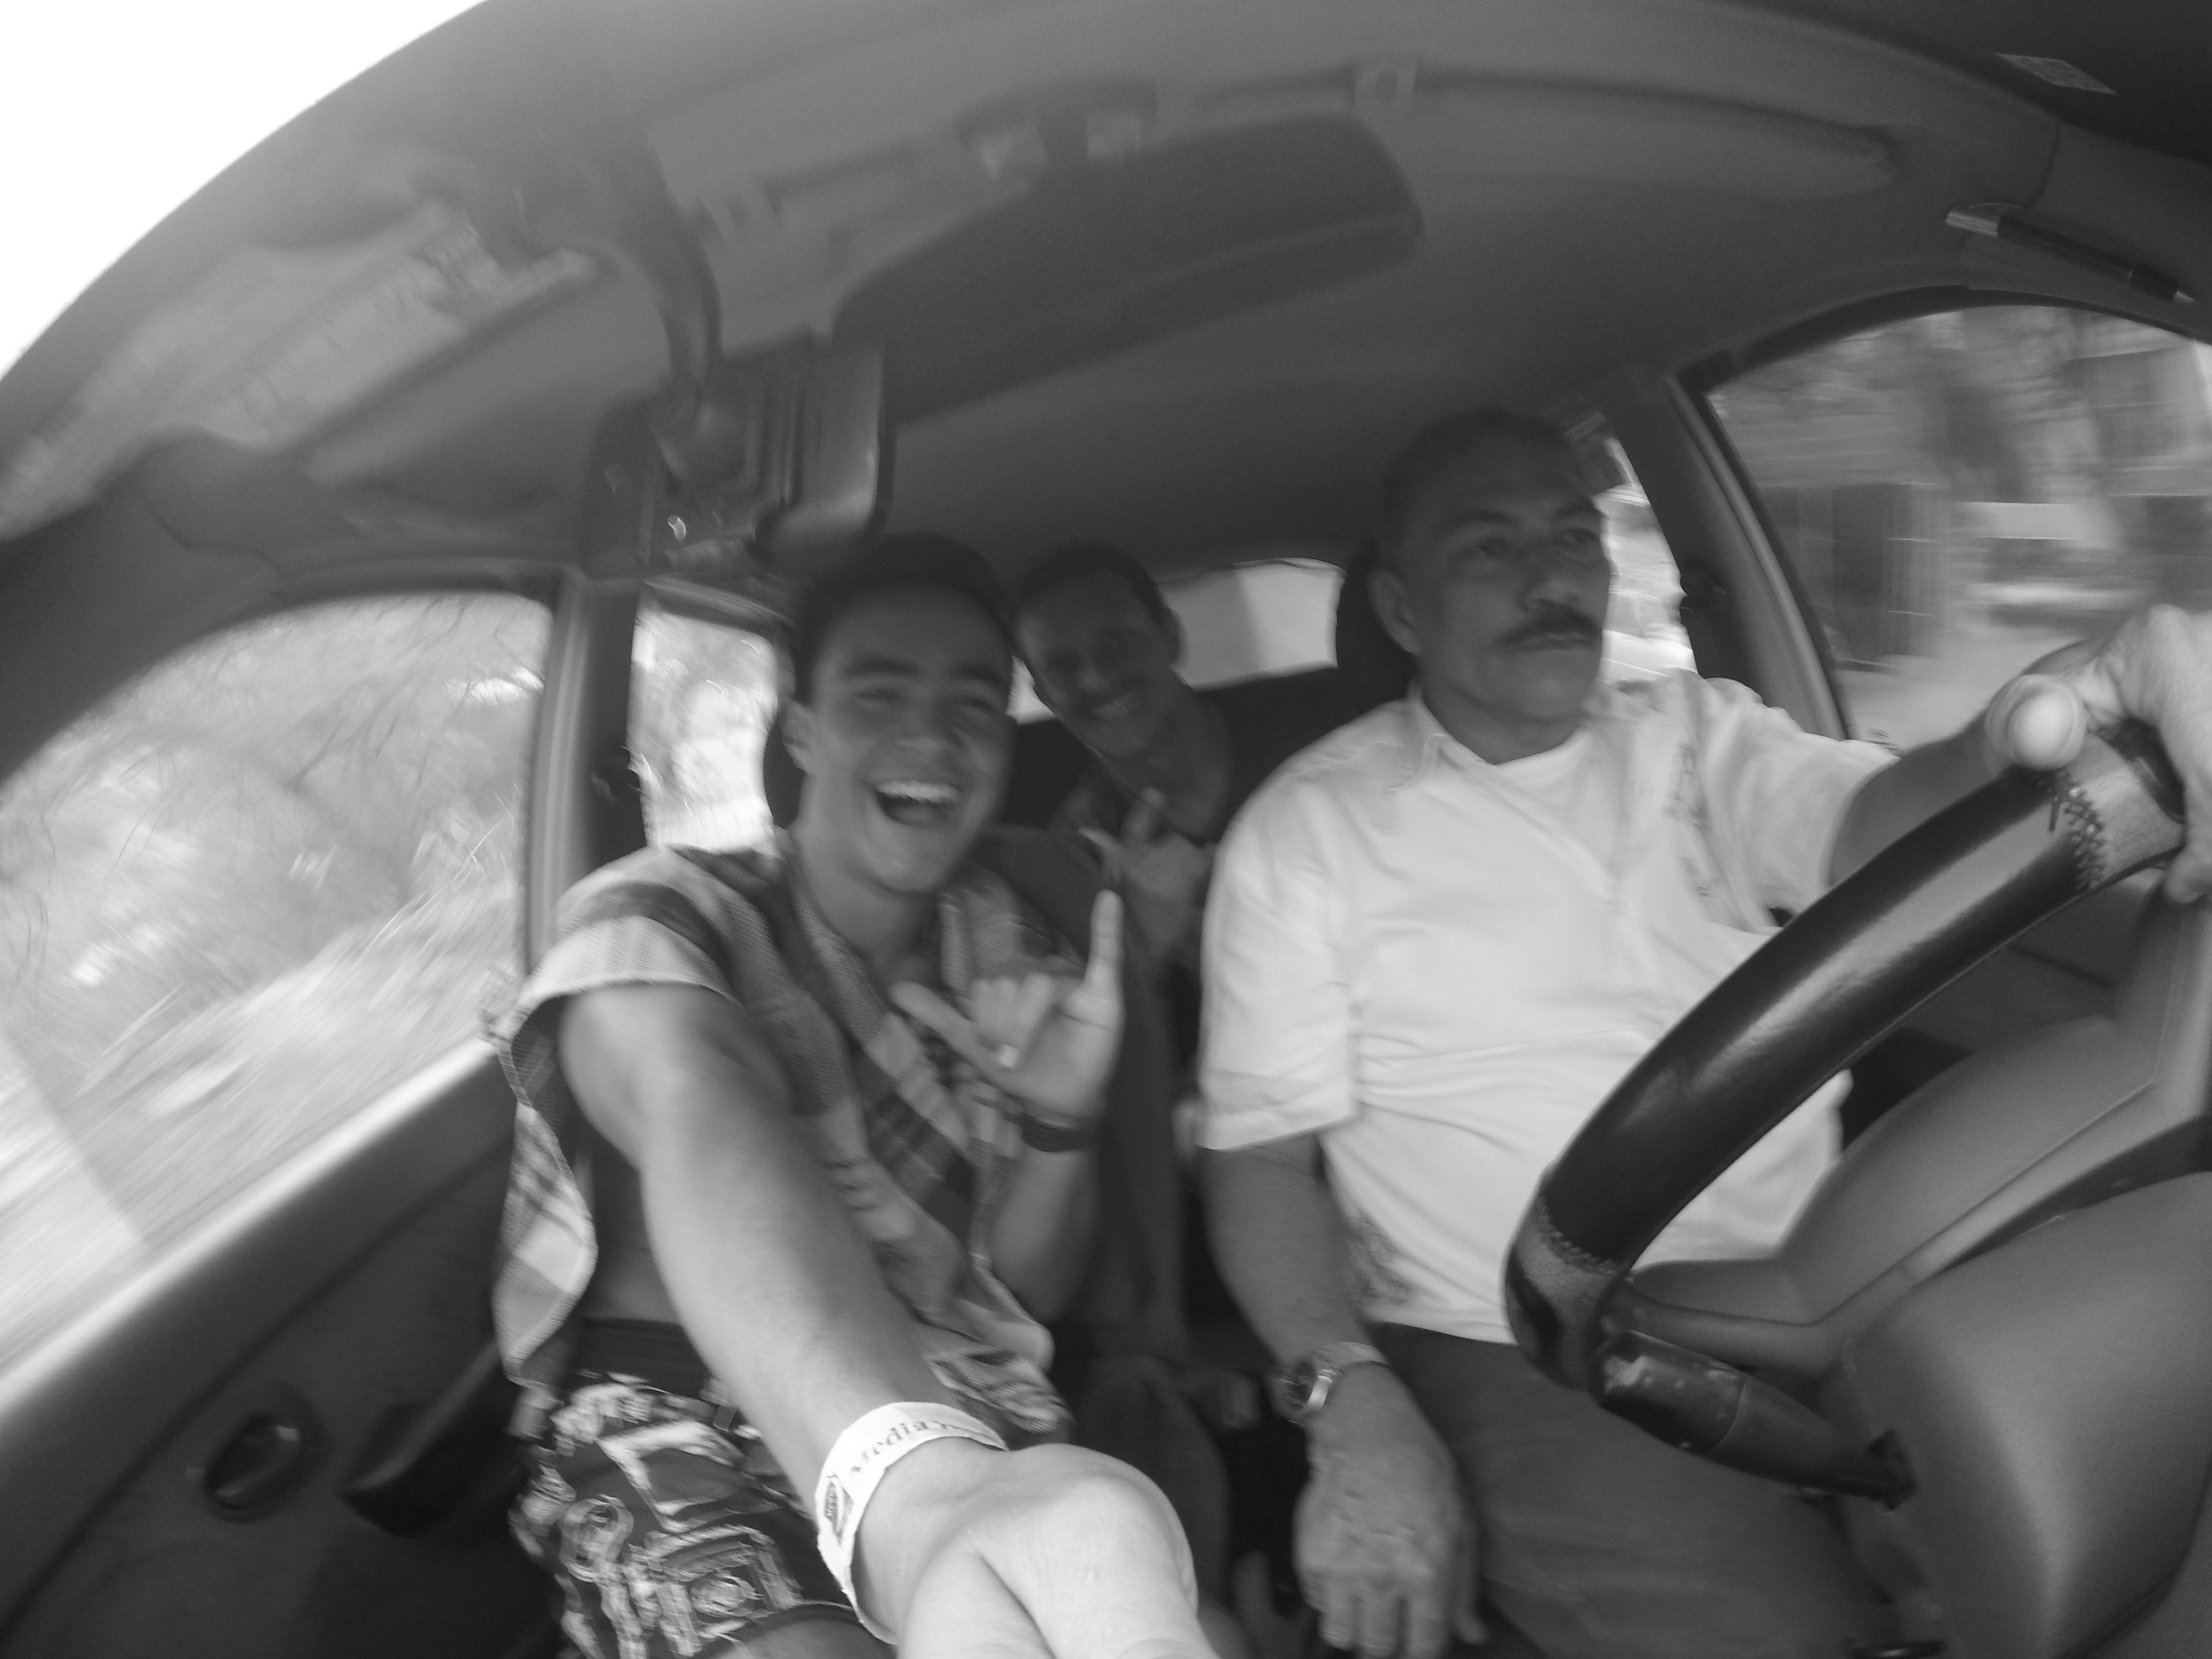 CRAZY TAXI JOURNEYS. I MET A BRAZILIAN BROTHER CALLED DIEGO. TOGETHER WE WENT EXPLORING SOME COASTLINES WITH THIS VERY WITTY TAXI DRIVER. I TOOK THIS SHOT JUST BEFORE WE GOT PULLED OVER AND SEMI DRUG SEARCHED.